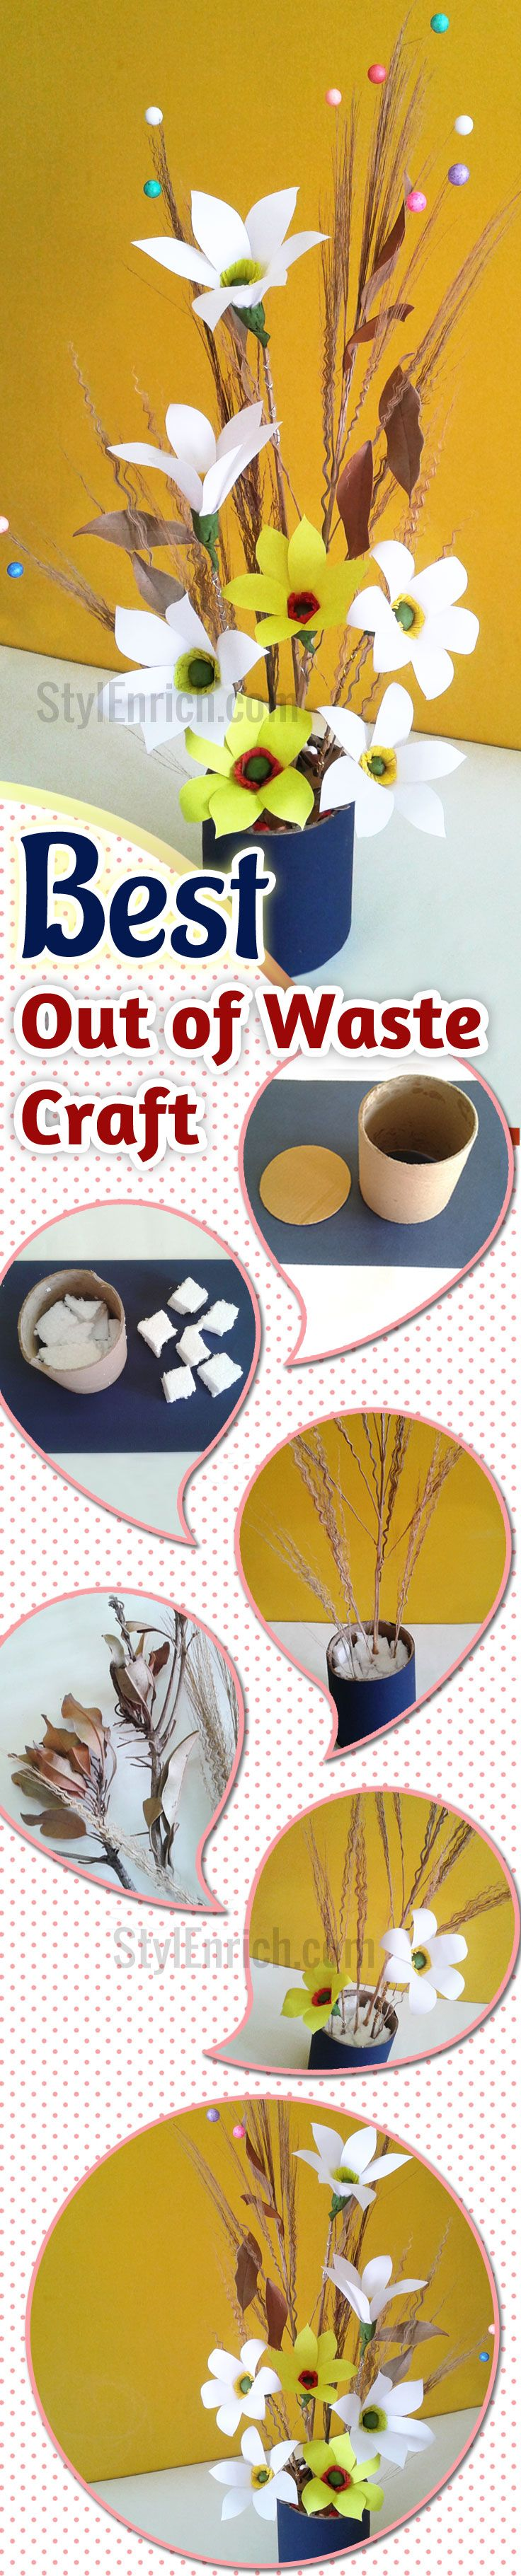 49 best images about best out of waste on pinterest for Best out of waste images